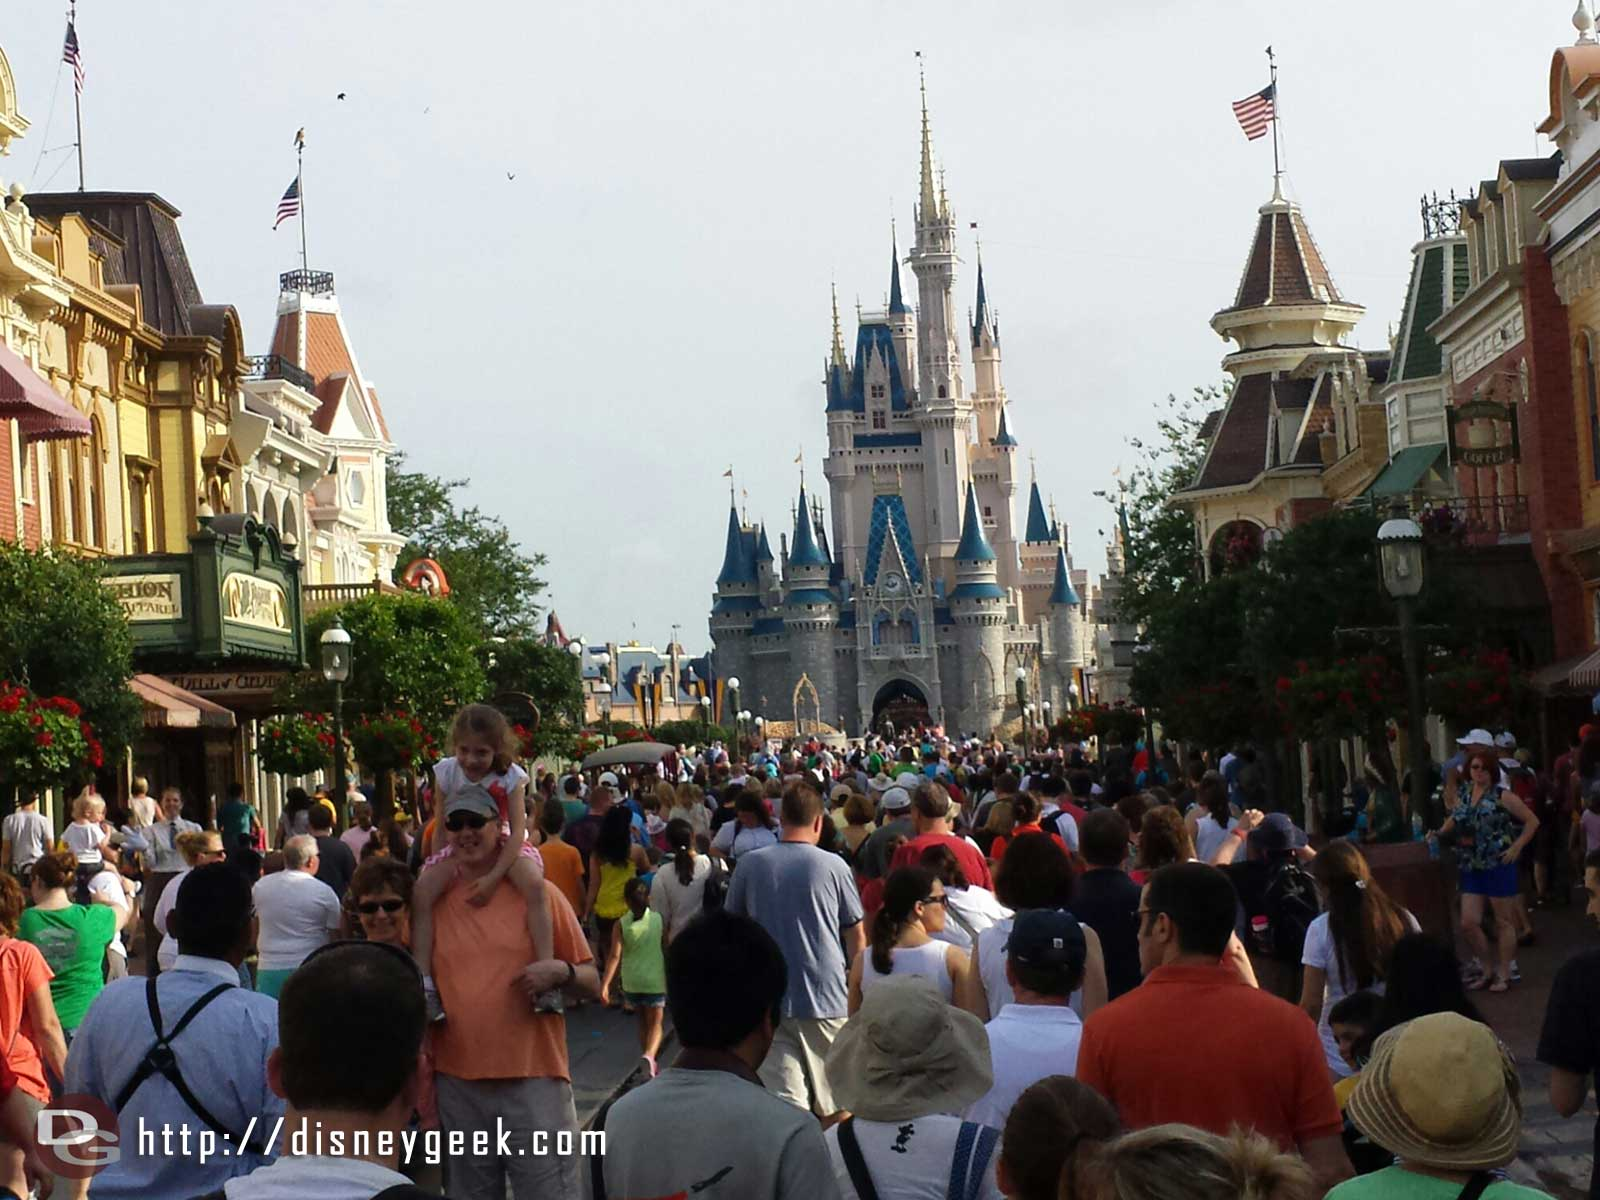 The Magic Kingdom opening crowd making its way up Main Street USA #wdw